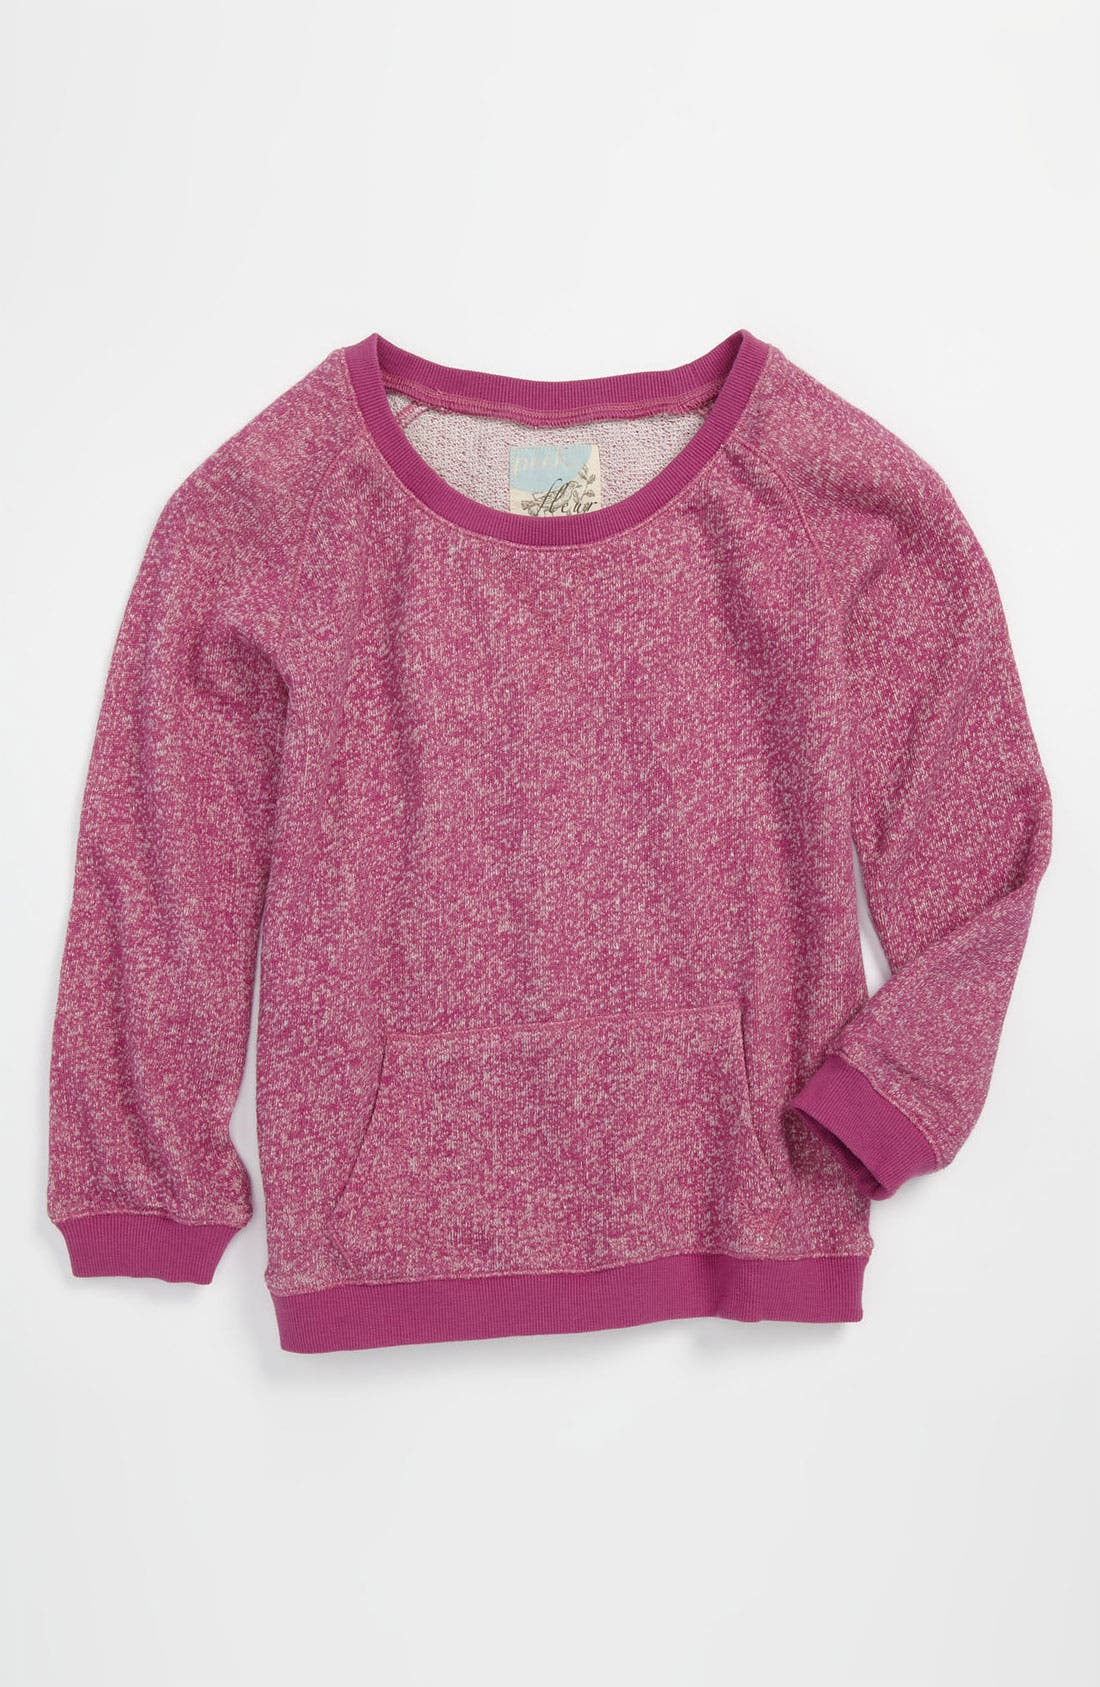 Alternate Image 1 Selected - Peek Crewneck Sweater (Toddler, Little Girls & Big Girls)